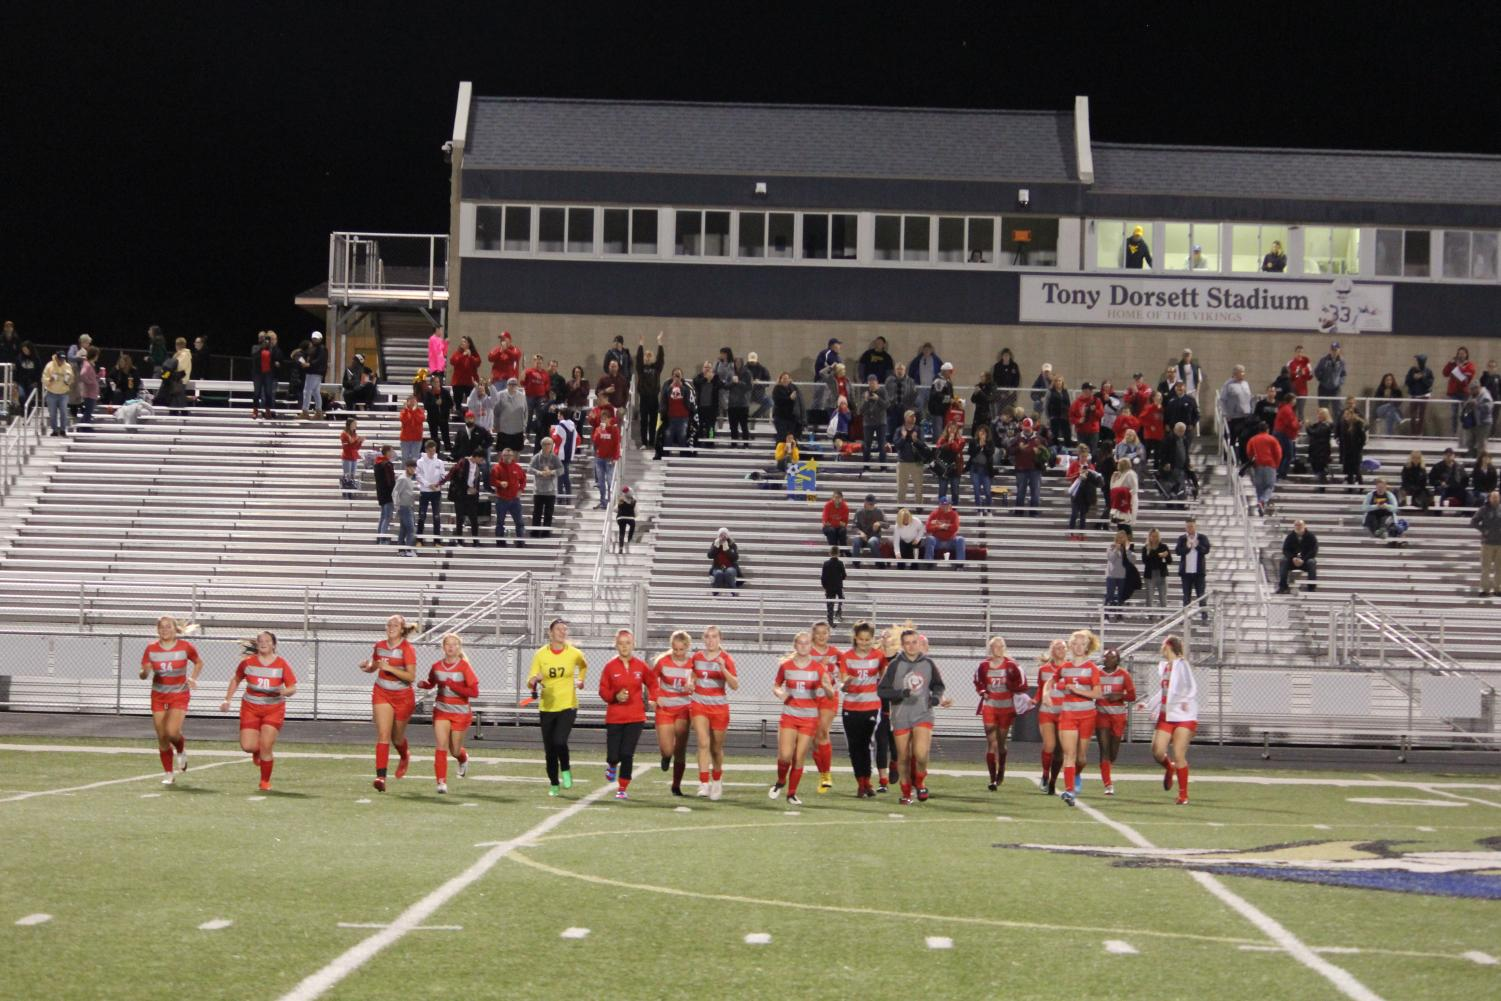 Following a tremendous 6-0 win over Bishop Canevin, the team runs over to the opposite sitline where the Freedom crowd is sitting as part of their celebration. After the crowd cheers them, they run back to their sidelines, excited by their win in the second round of playoffs.